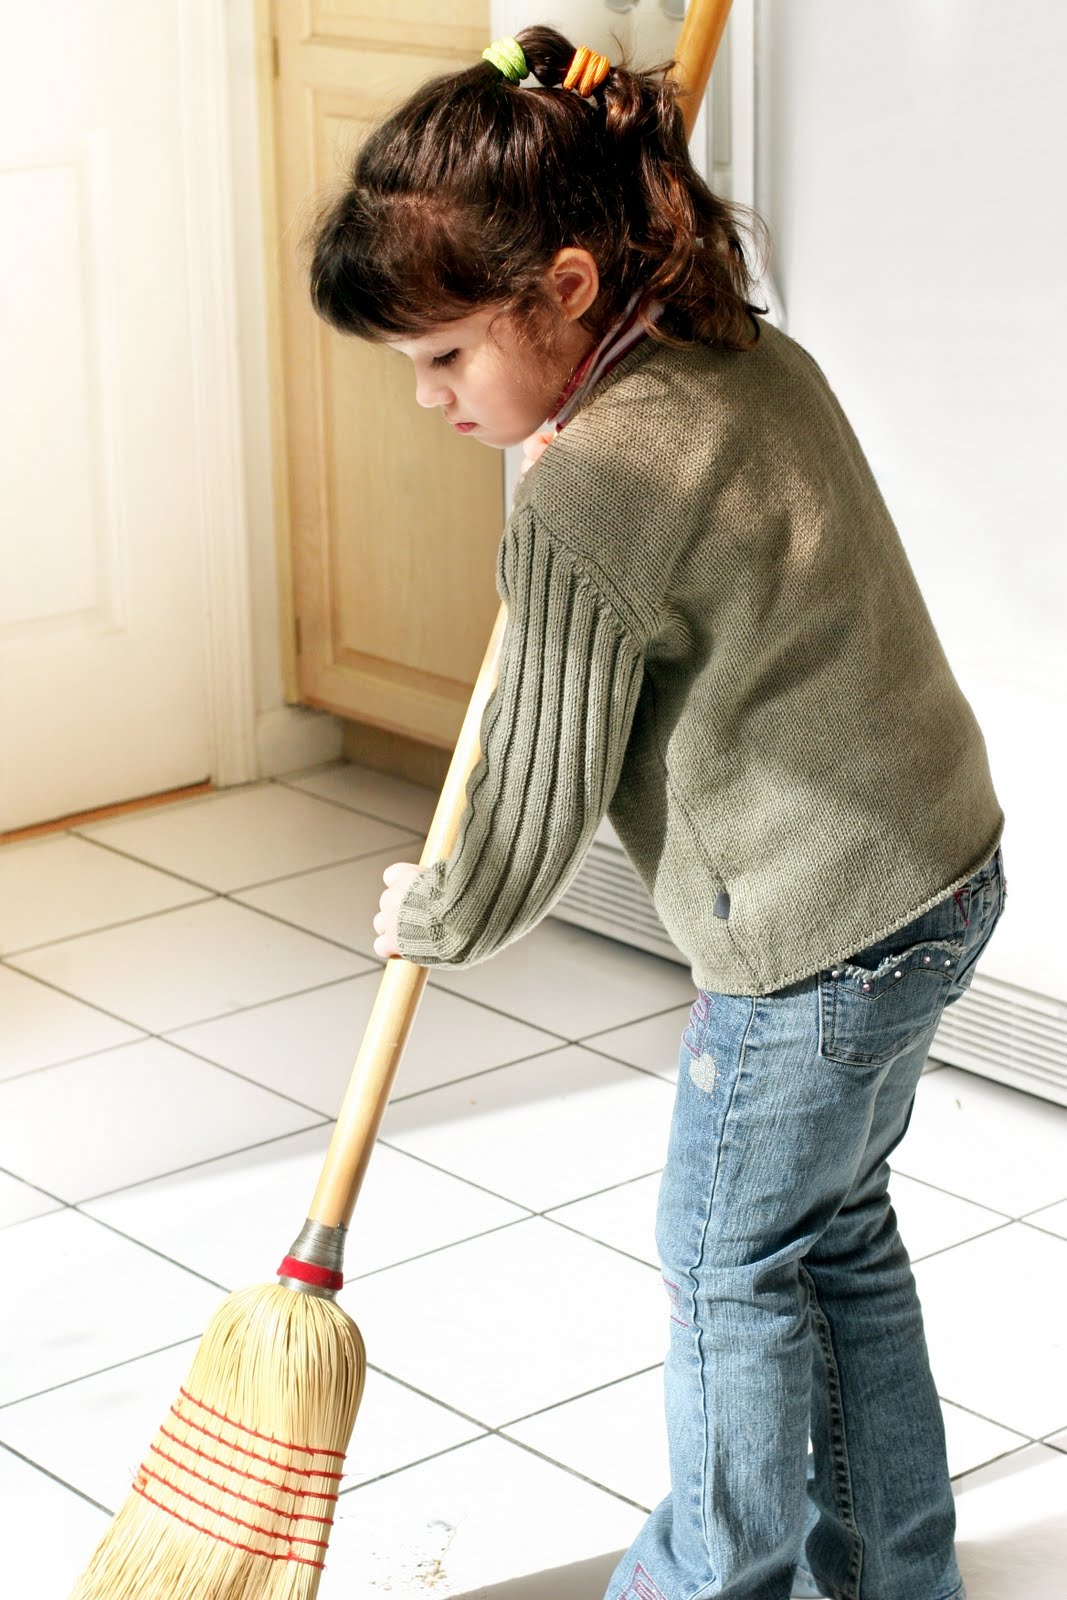 children cleaning - photo #24